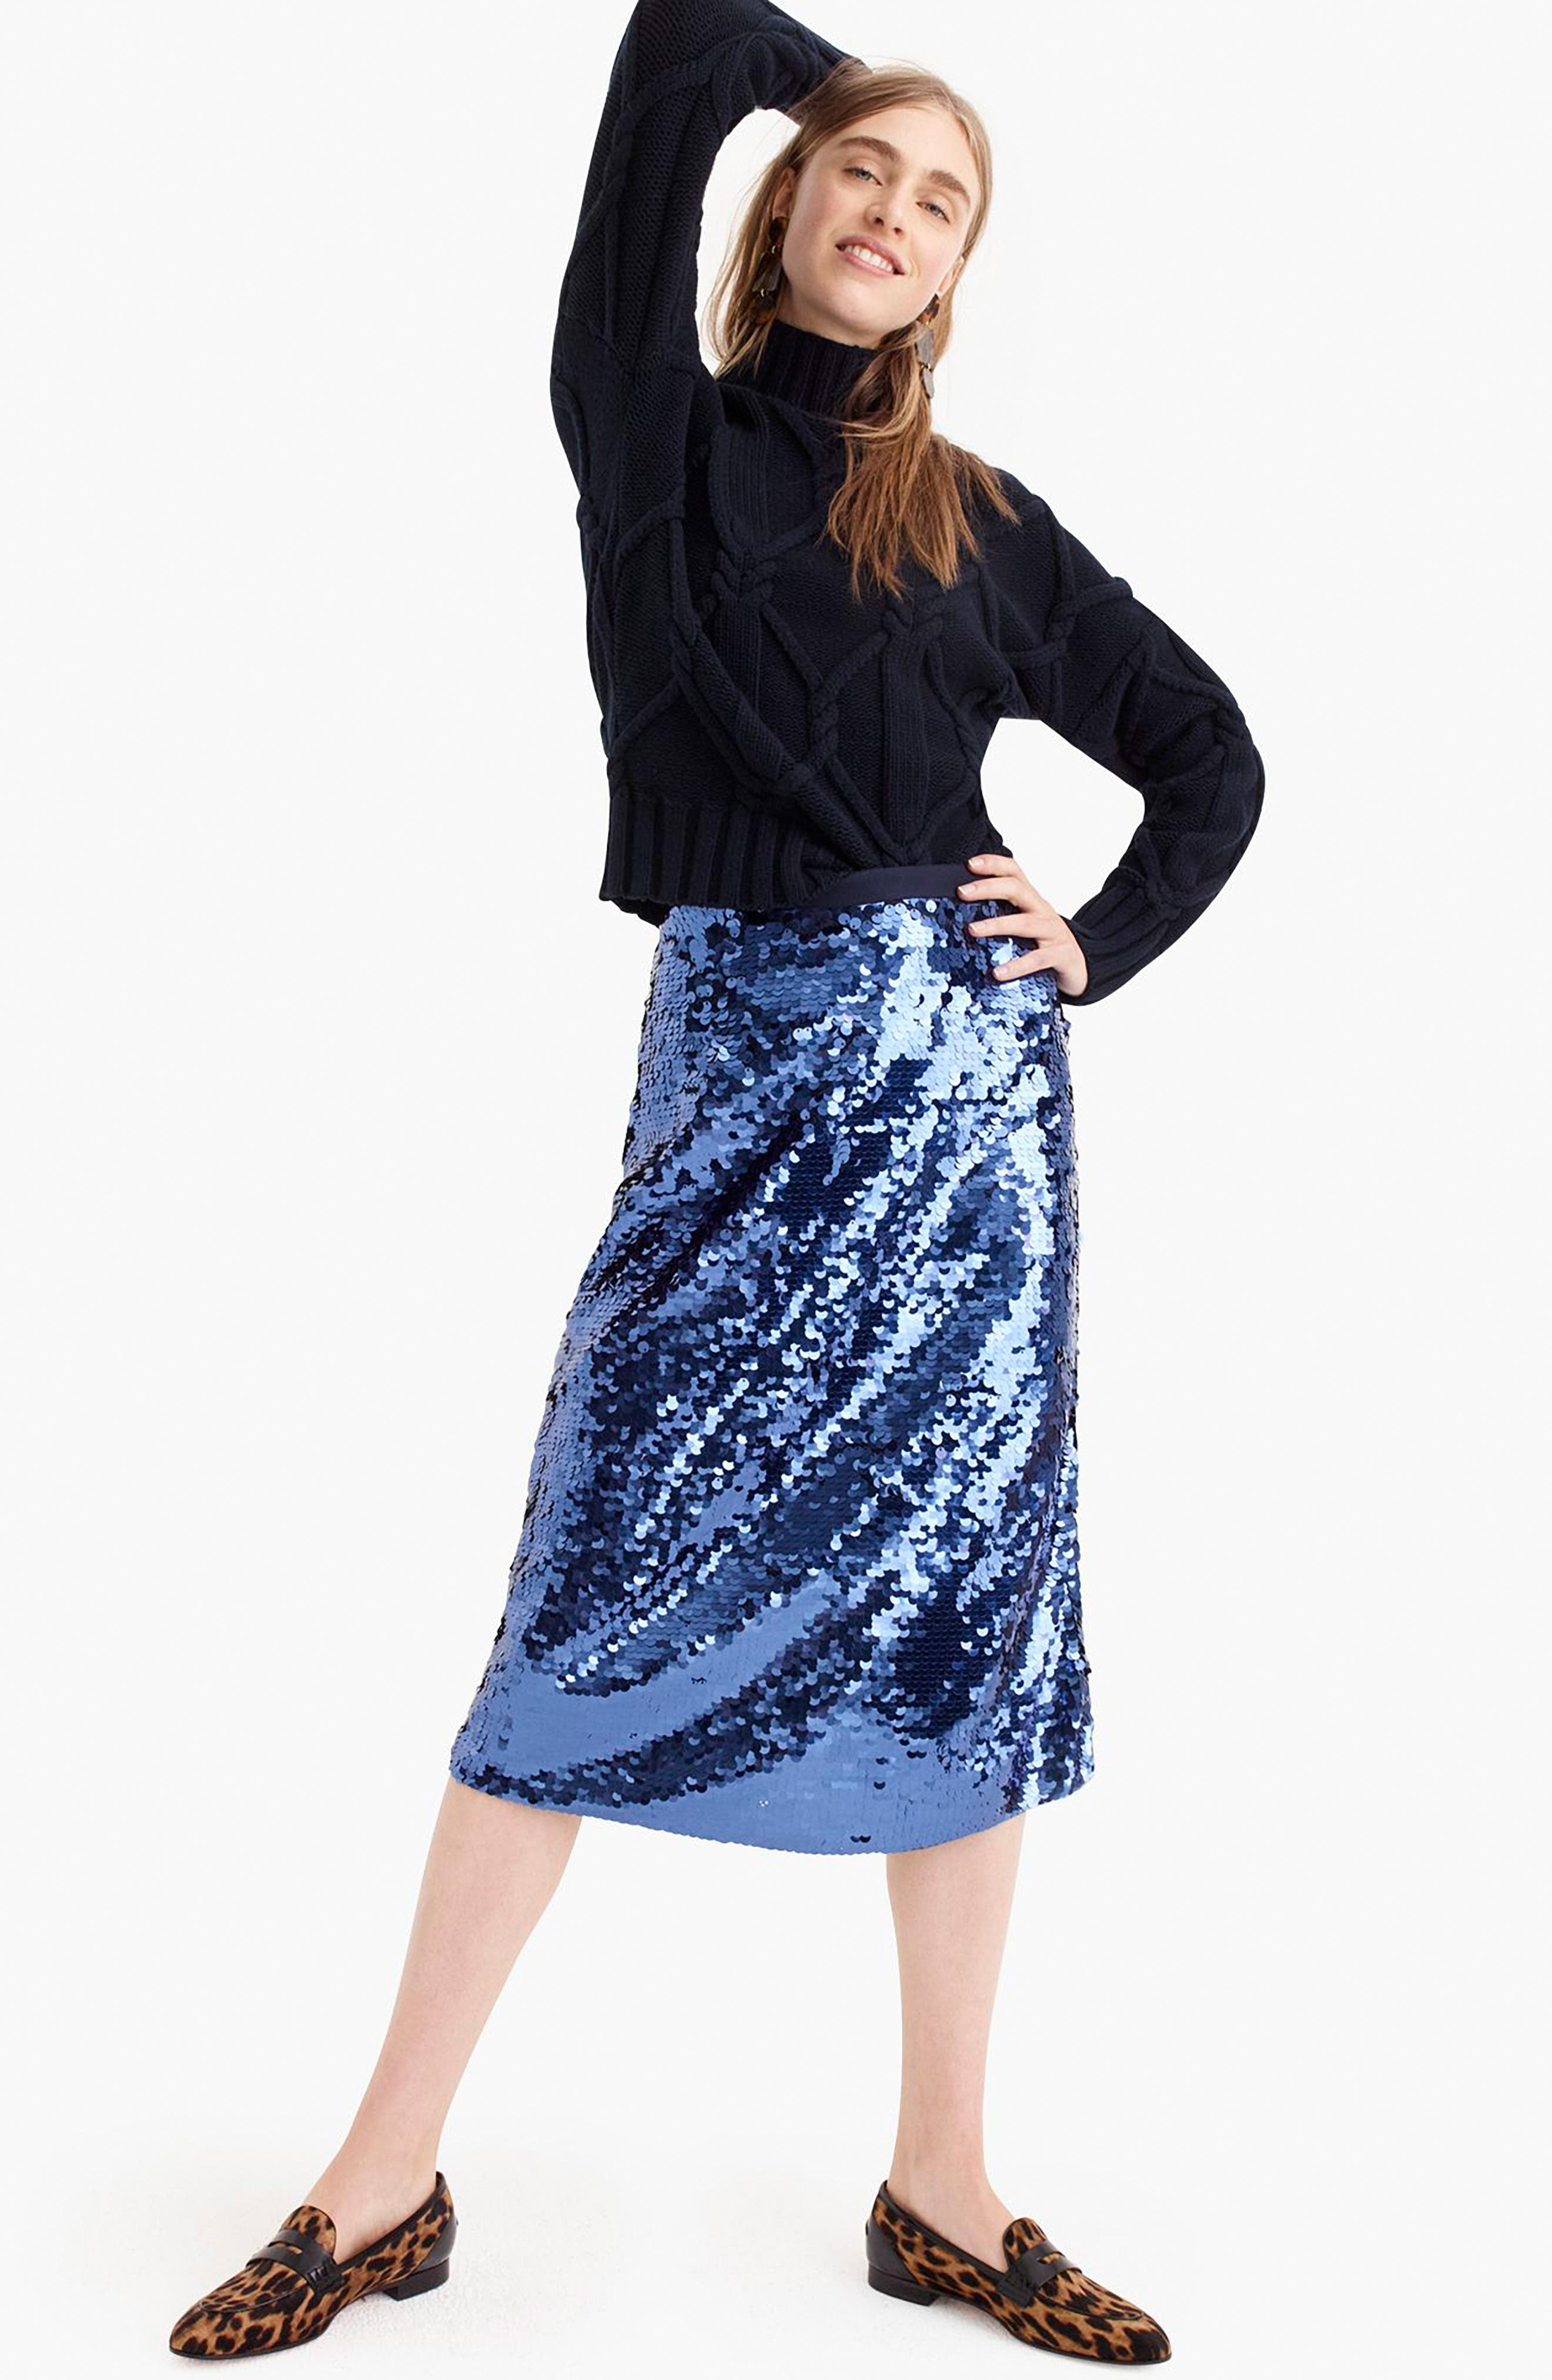 Sequin Midi Skirt with Tie,                             Alternate thumbnail 6, color,                             NAVY